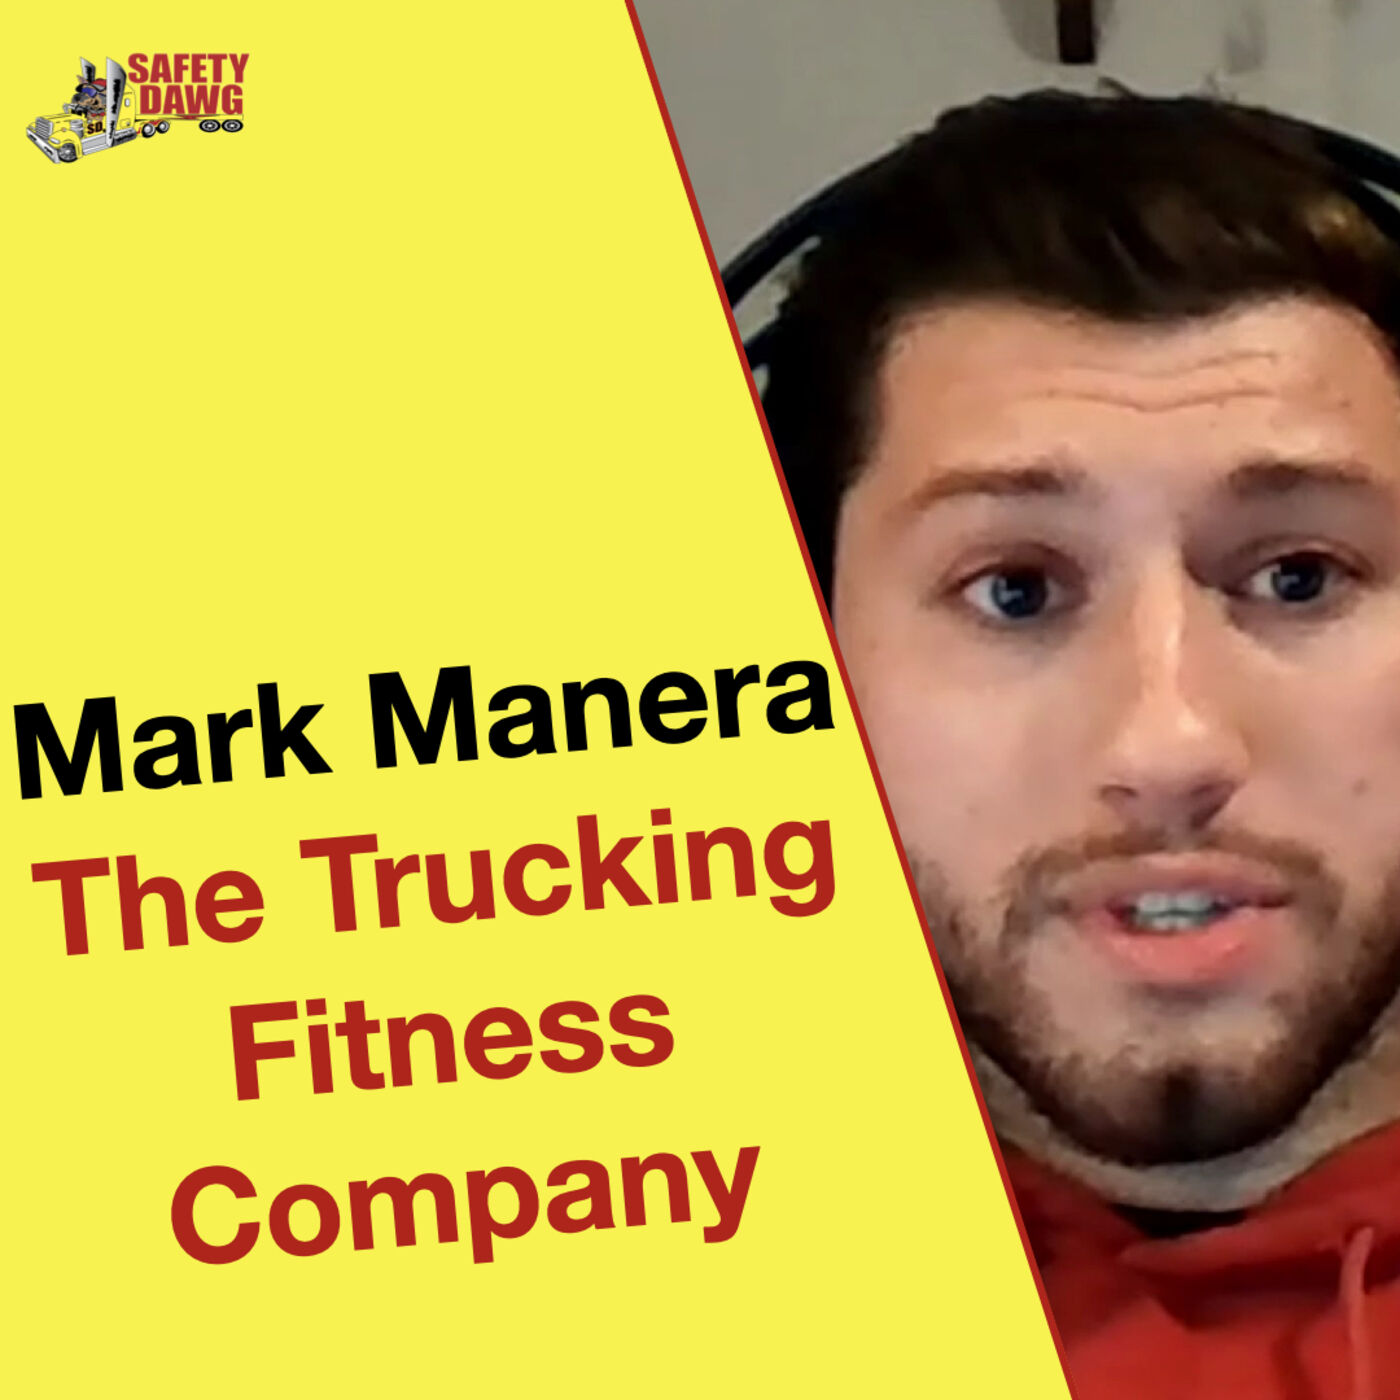 39. Hard To Make The Right Choices? Damn Right. Mark Knows